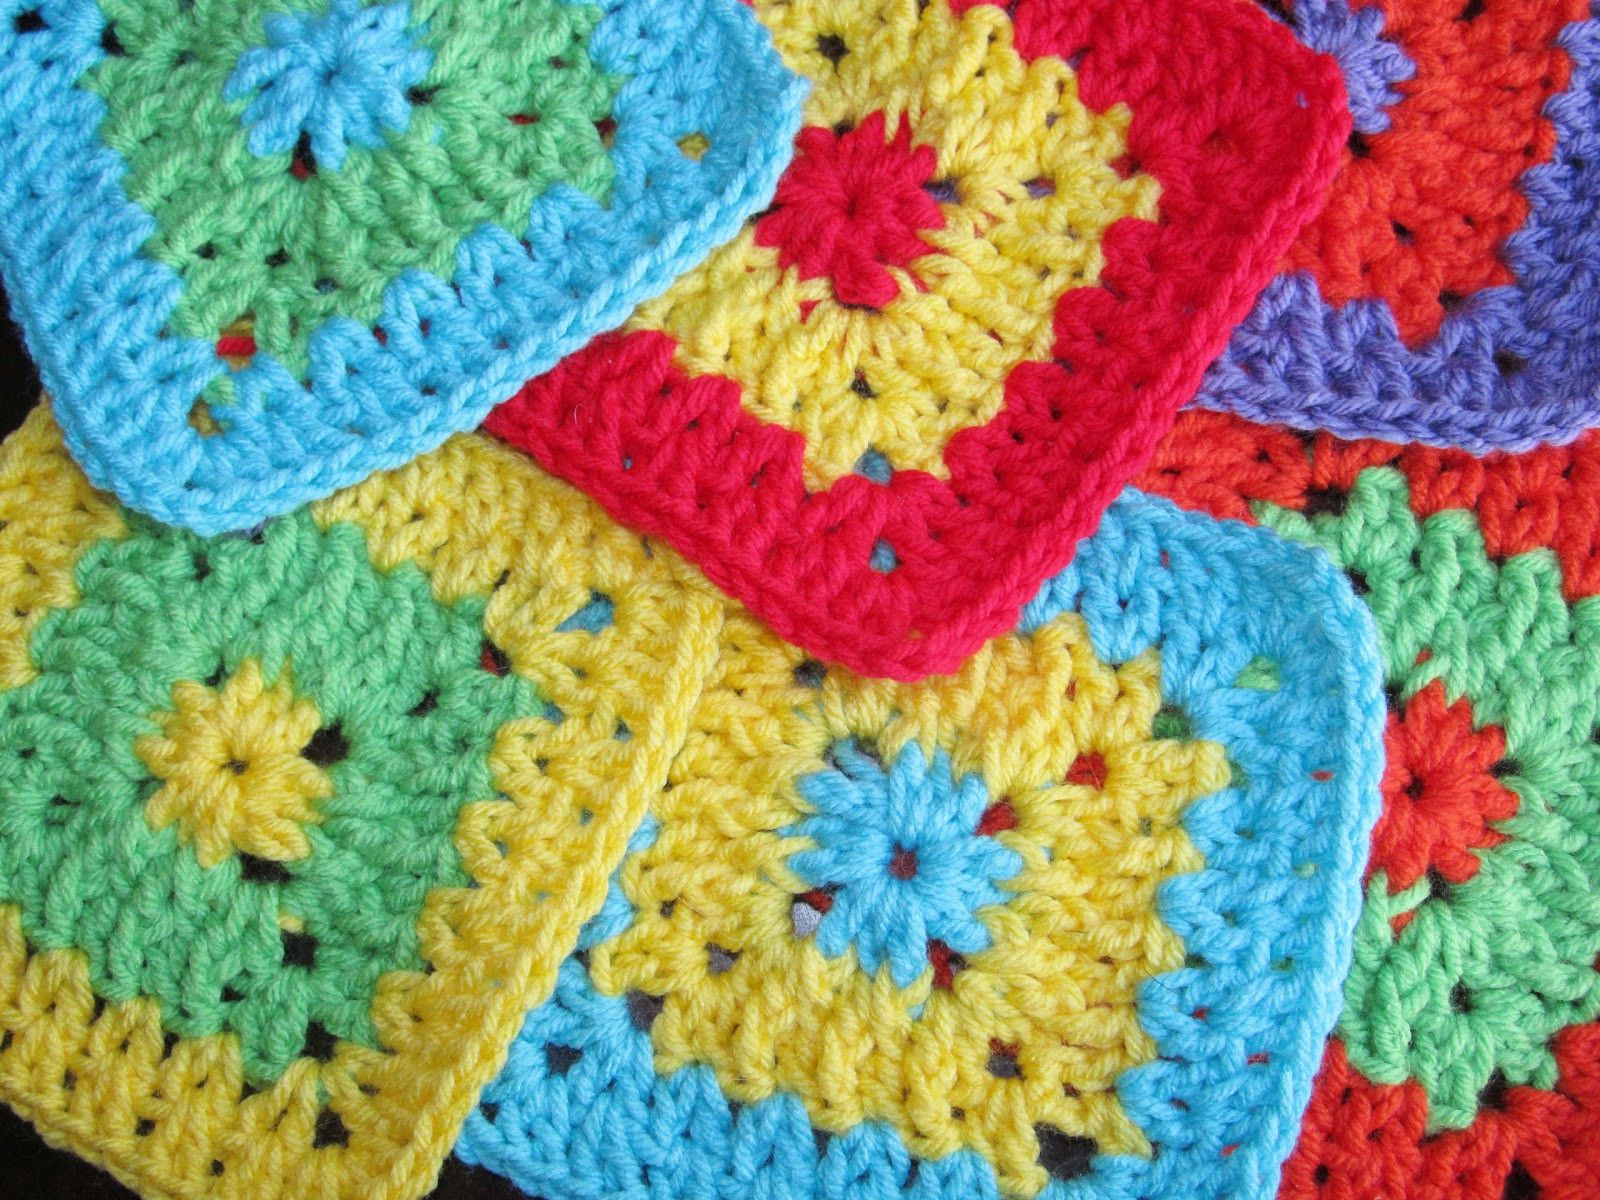 Crochet Square Patterns Elegant Smoothfox Crochet and Knit Smoothfox Cool 2b Square Of Marvelous 43 Photos Crochet Square Patterns